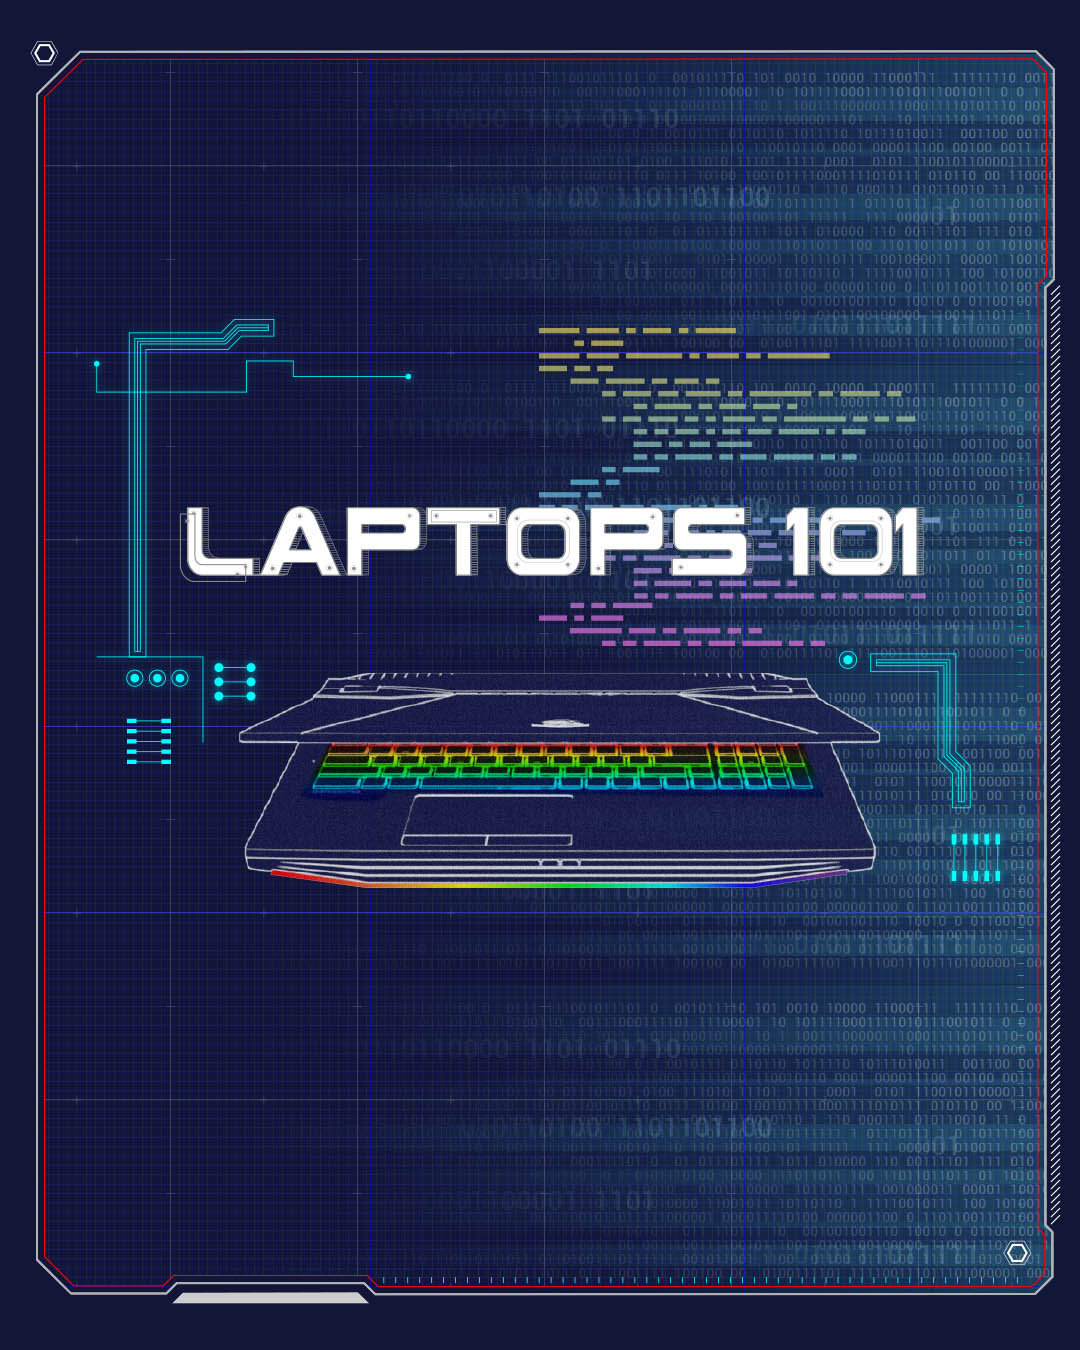 Laptops 101- Top 5 things to know when buying a laptop